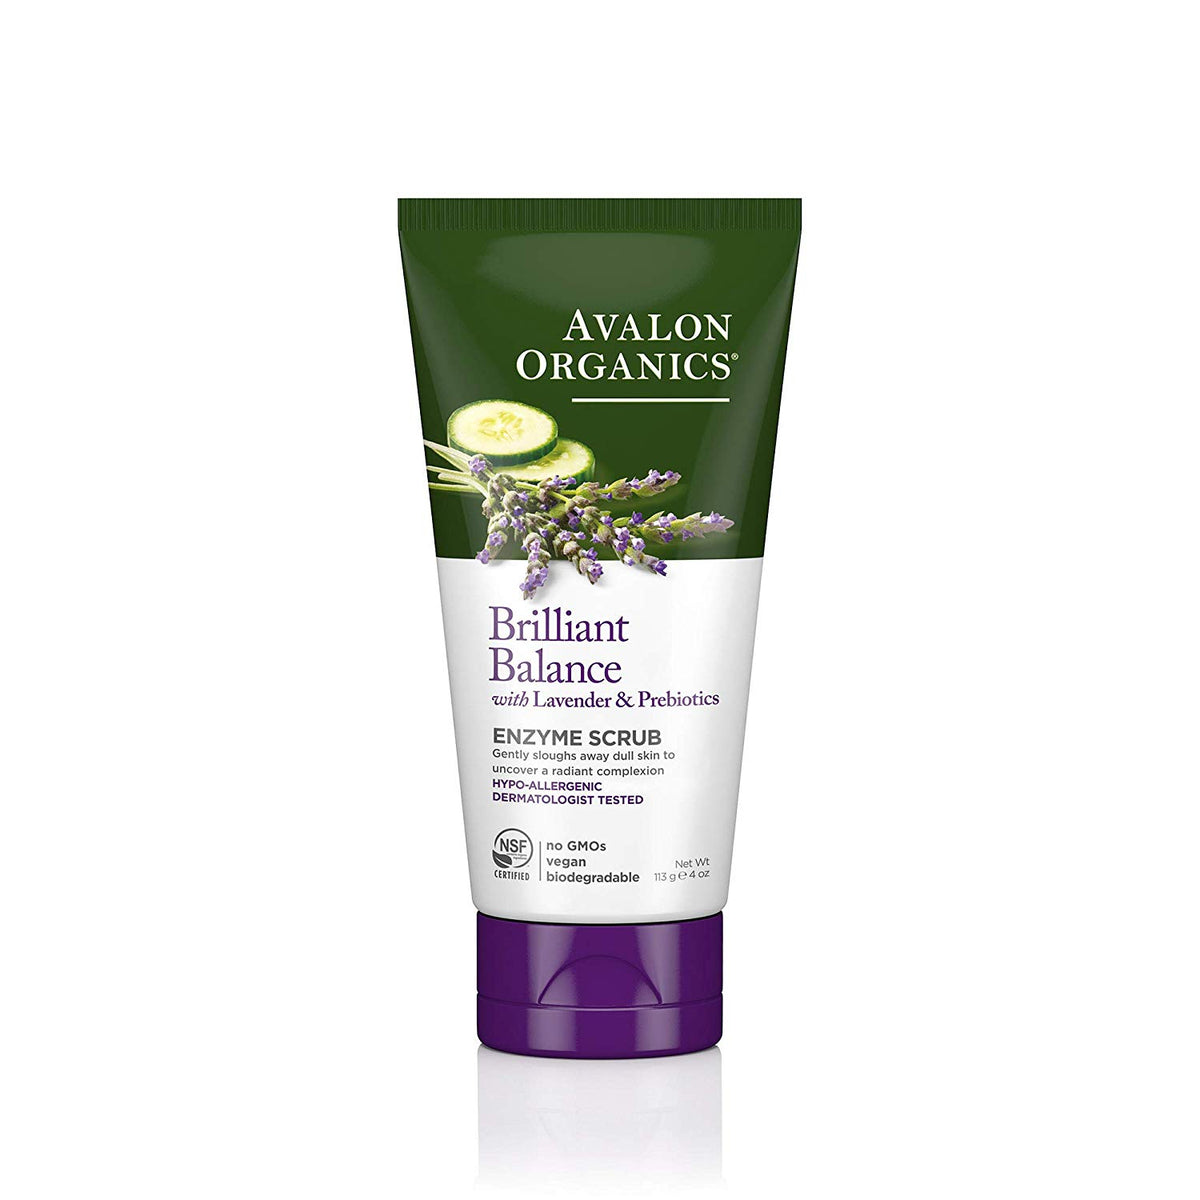 Avalon Organics Brilliant Balance Enzyme Face Scrub 100ml